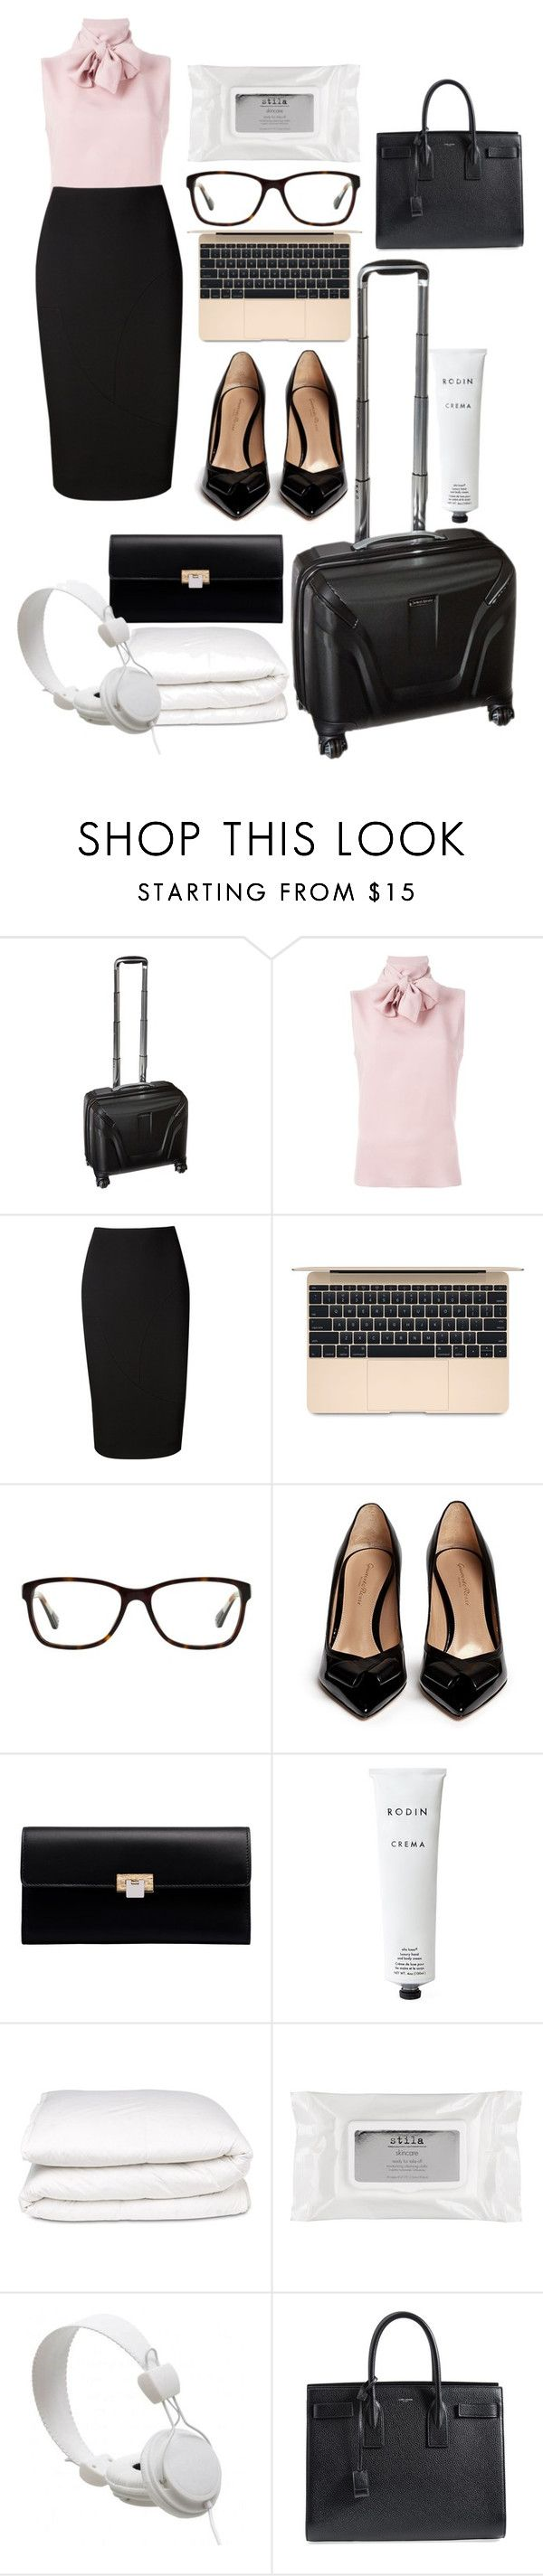 """CCCLXXII"" by absinthemartini ❤ liked on Polyvore featuring Samsonite, Valentino, Victoria Beckham, Coach, Gianvito Rossi, Balenciaga, Rodin Olio Lusso, Selfridges, Stila and WeSC"